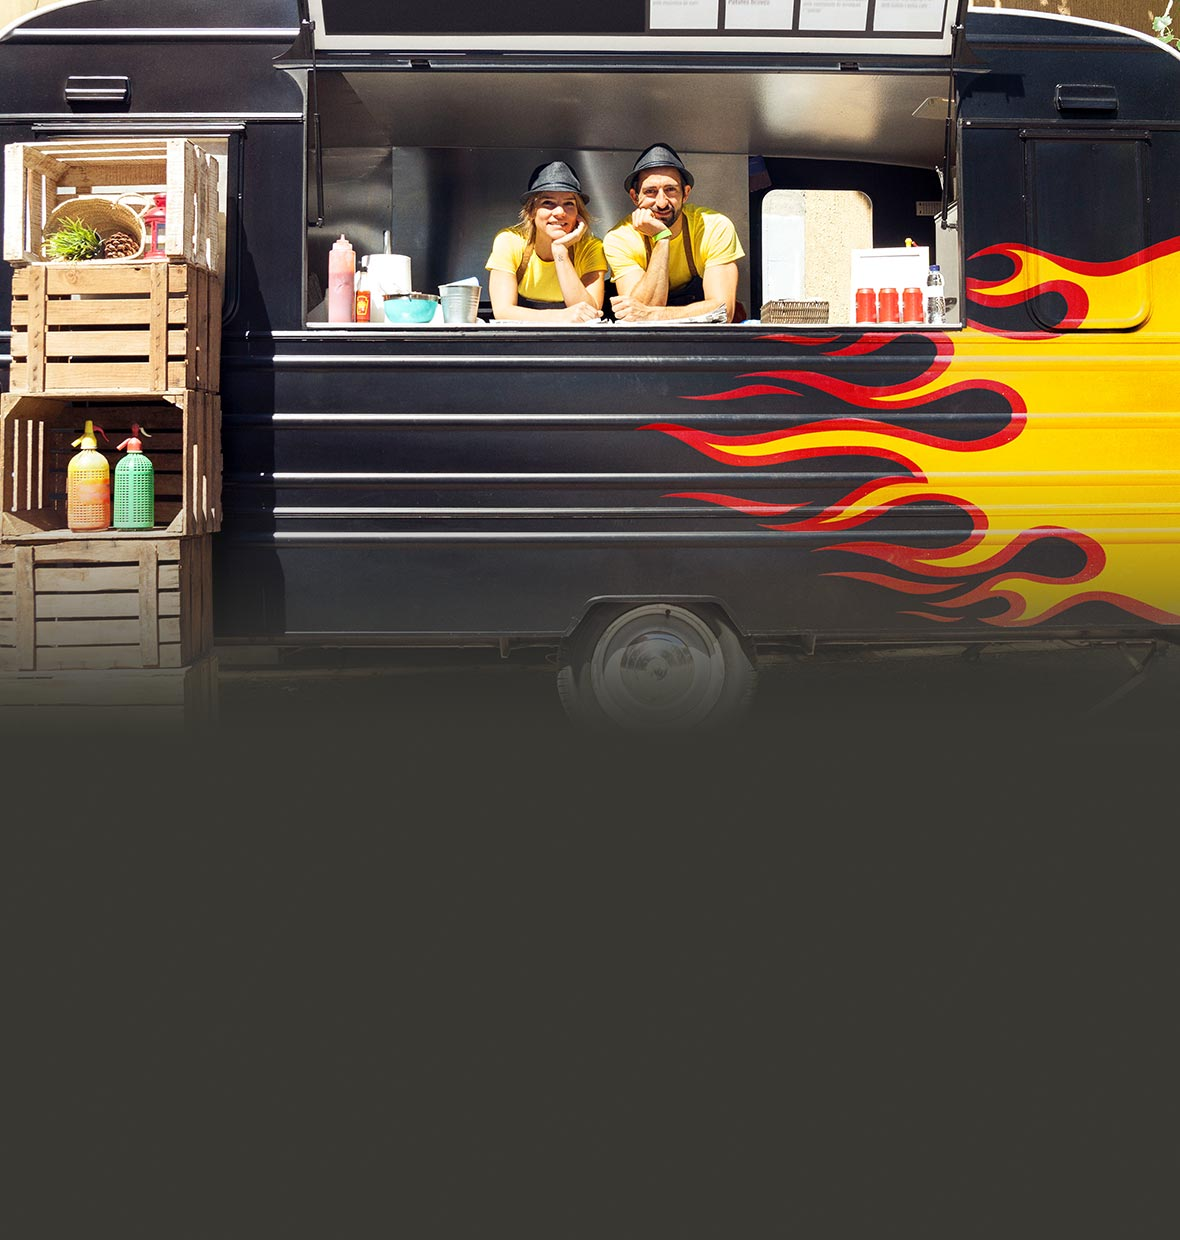 A couple working in a food truck with a flame painted on the side